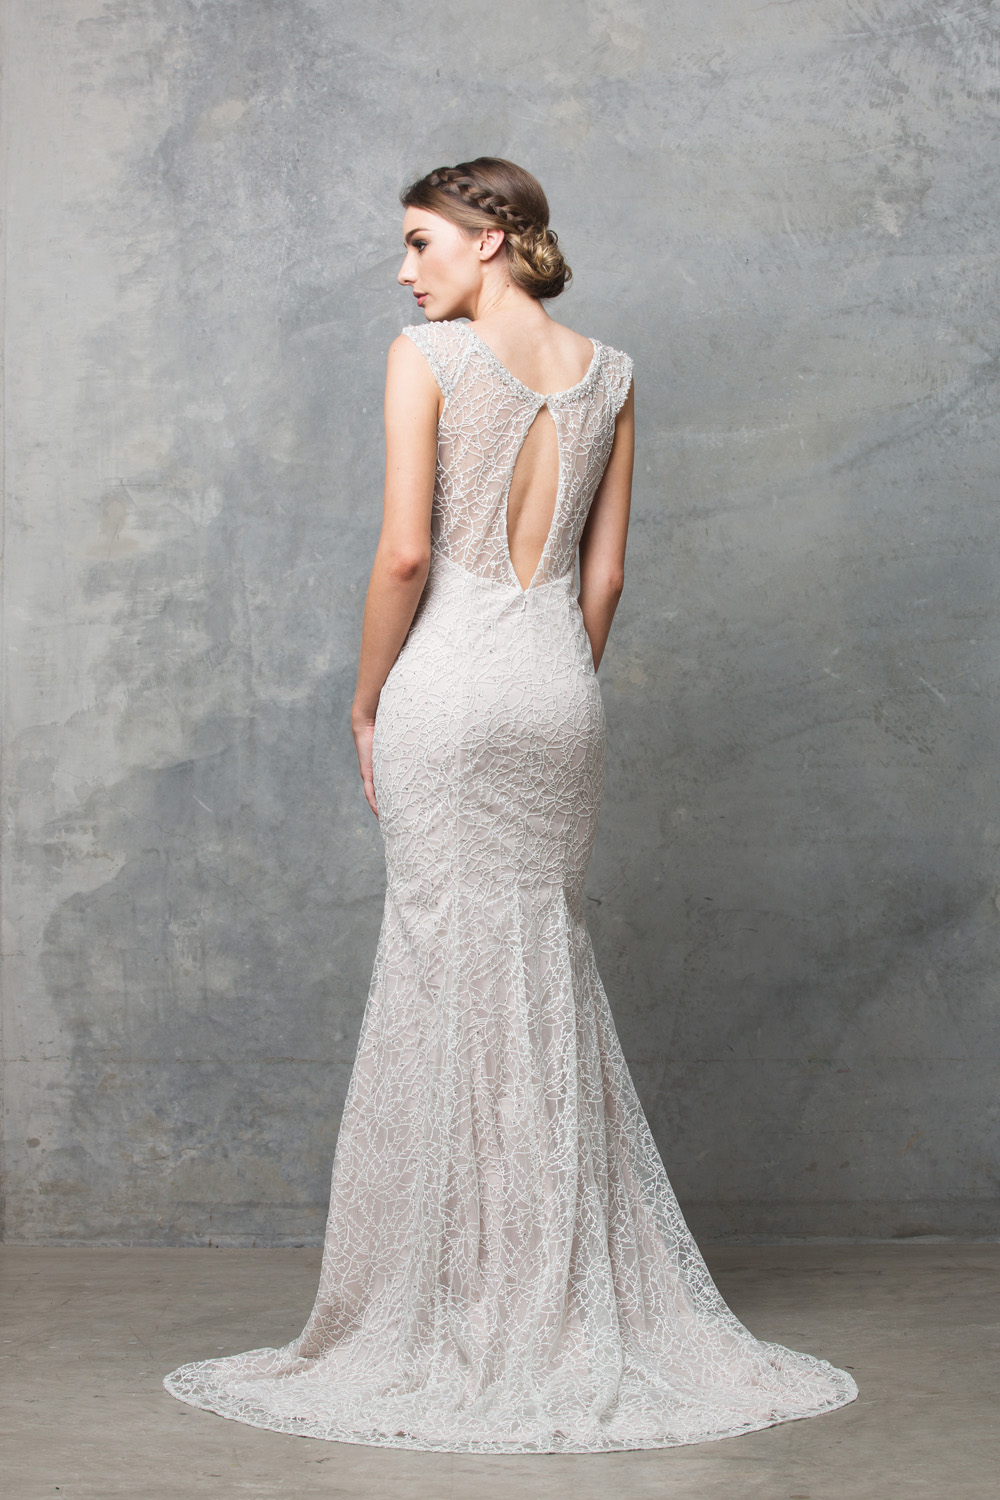 Tc012 Kalisi Embroidered Lace Back Keyhole Wedding Dress Chagne: Key Hole Wedding Dress At Reisefeber.org